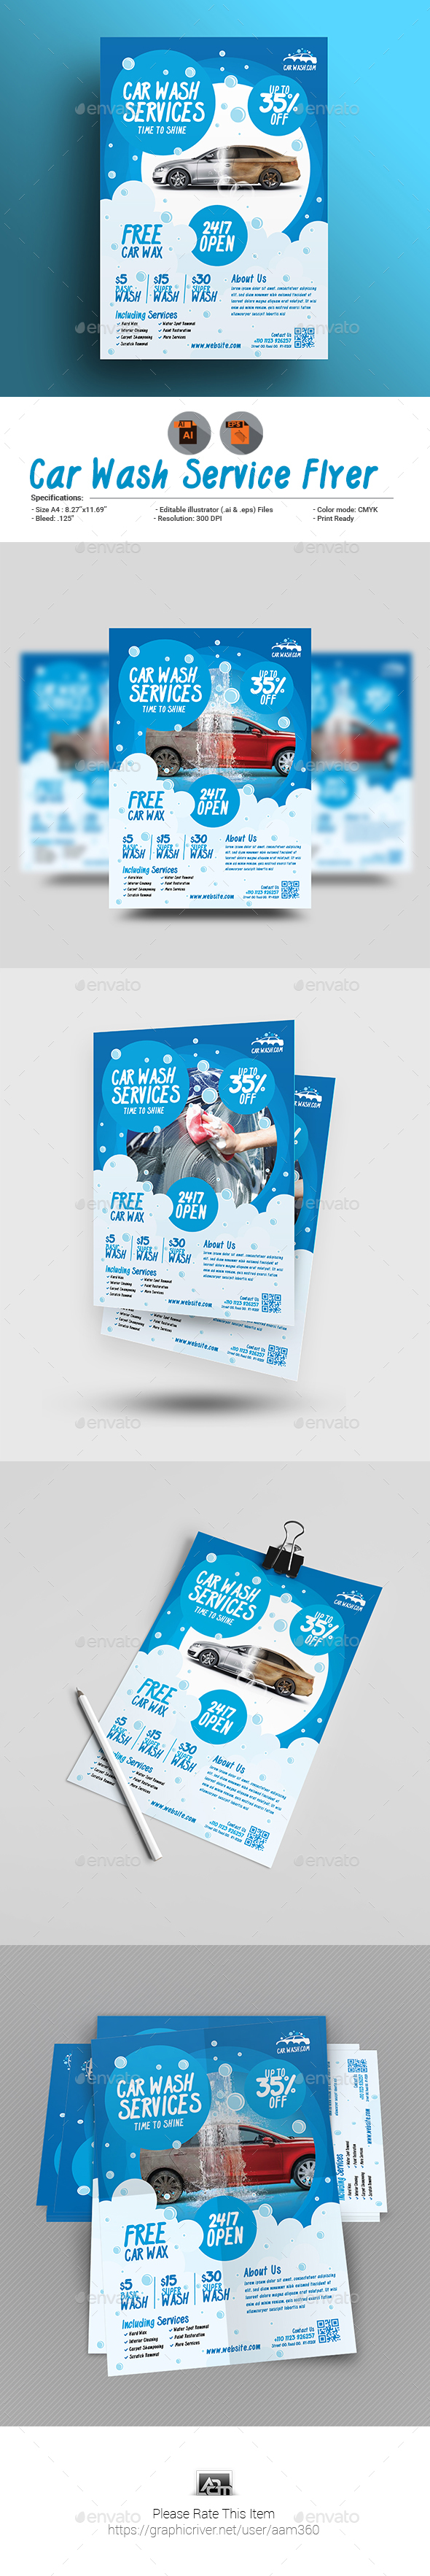 Car Wash Flyer V3 - Corporate Flyers